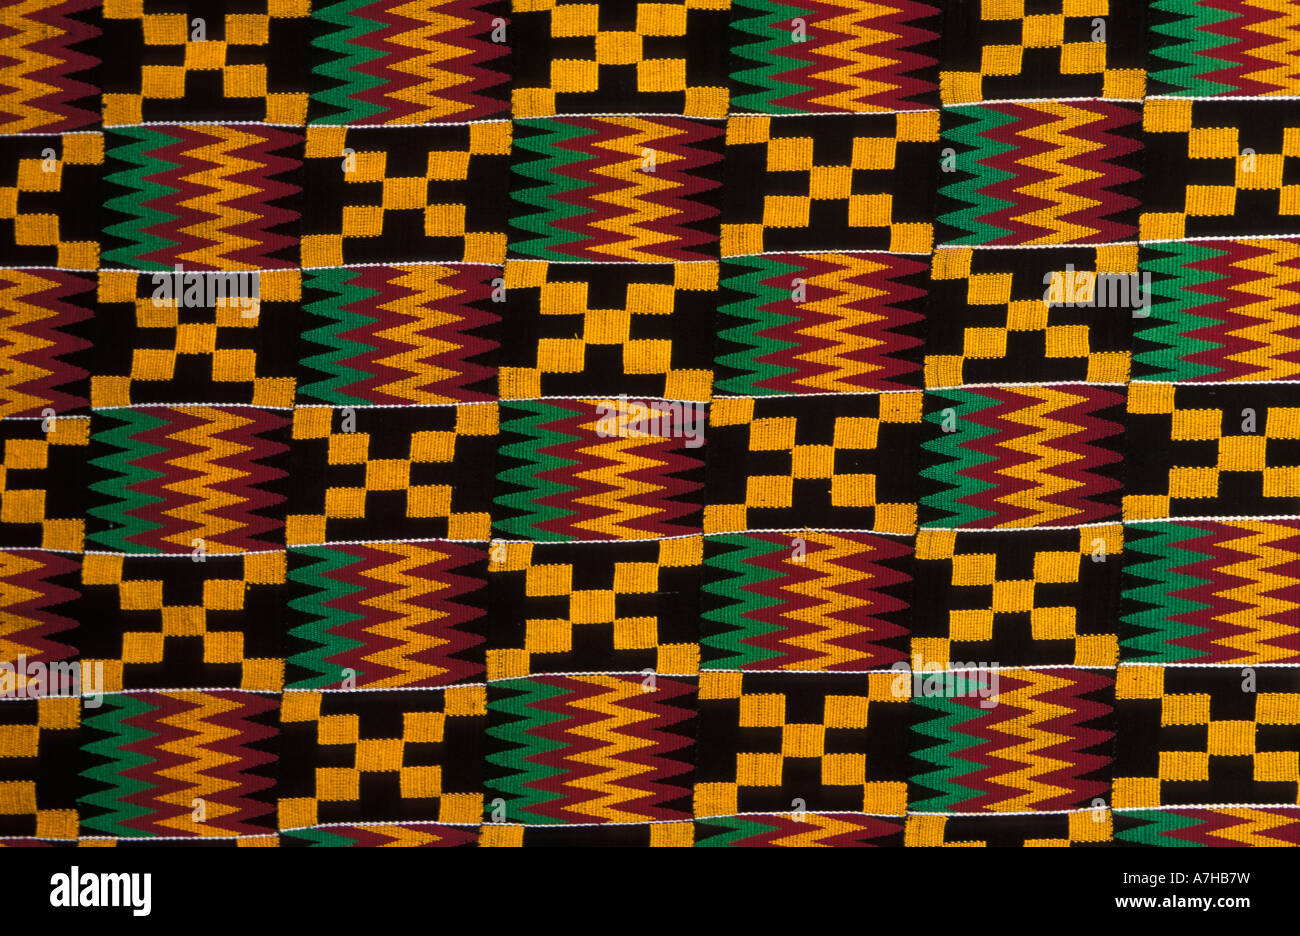 Kente Cloth Ghana Stock Photos & Kente Cloth Ghana Stock